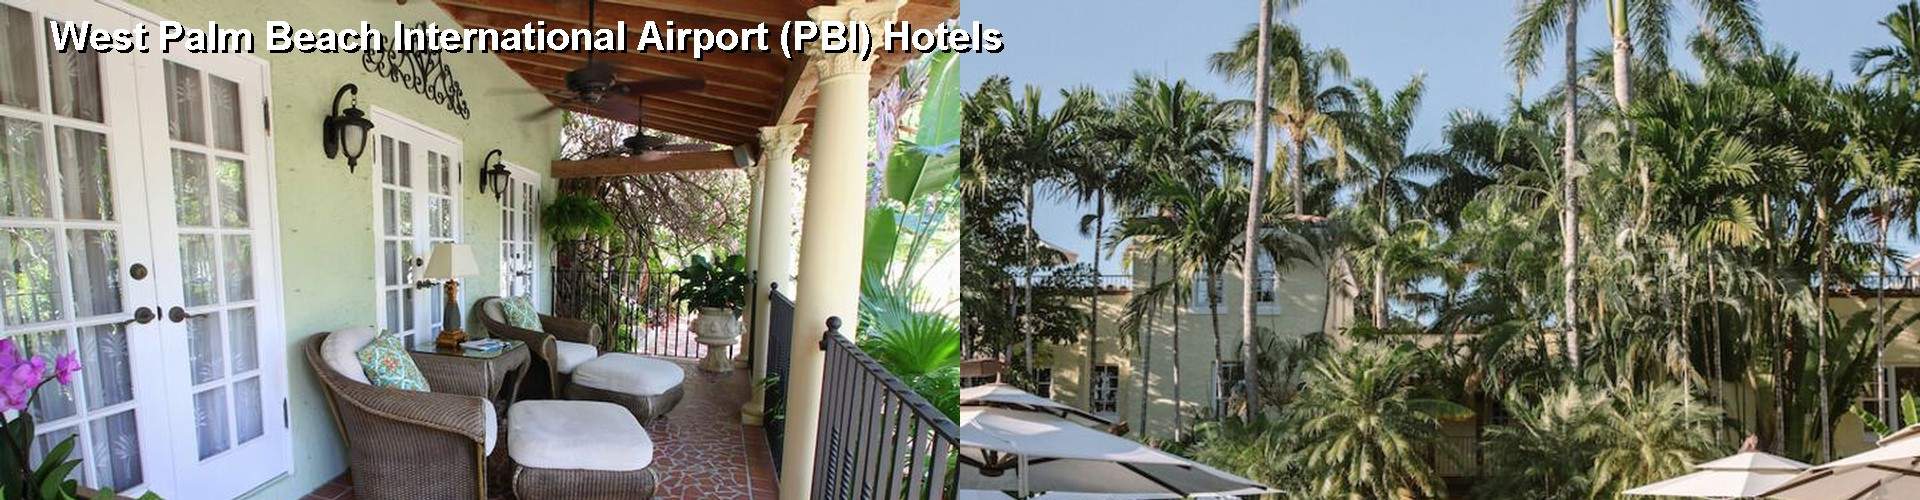 5 Best Hotels Near West Palm Beach International Airport Pbi